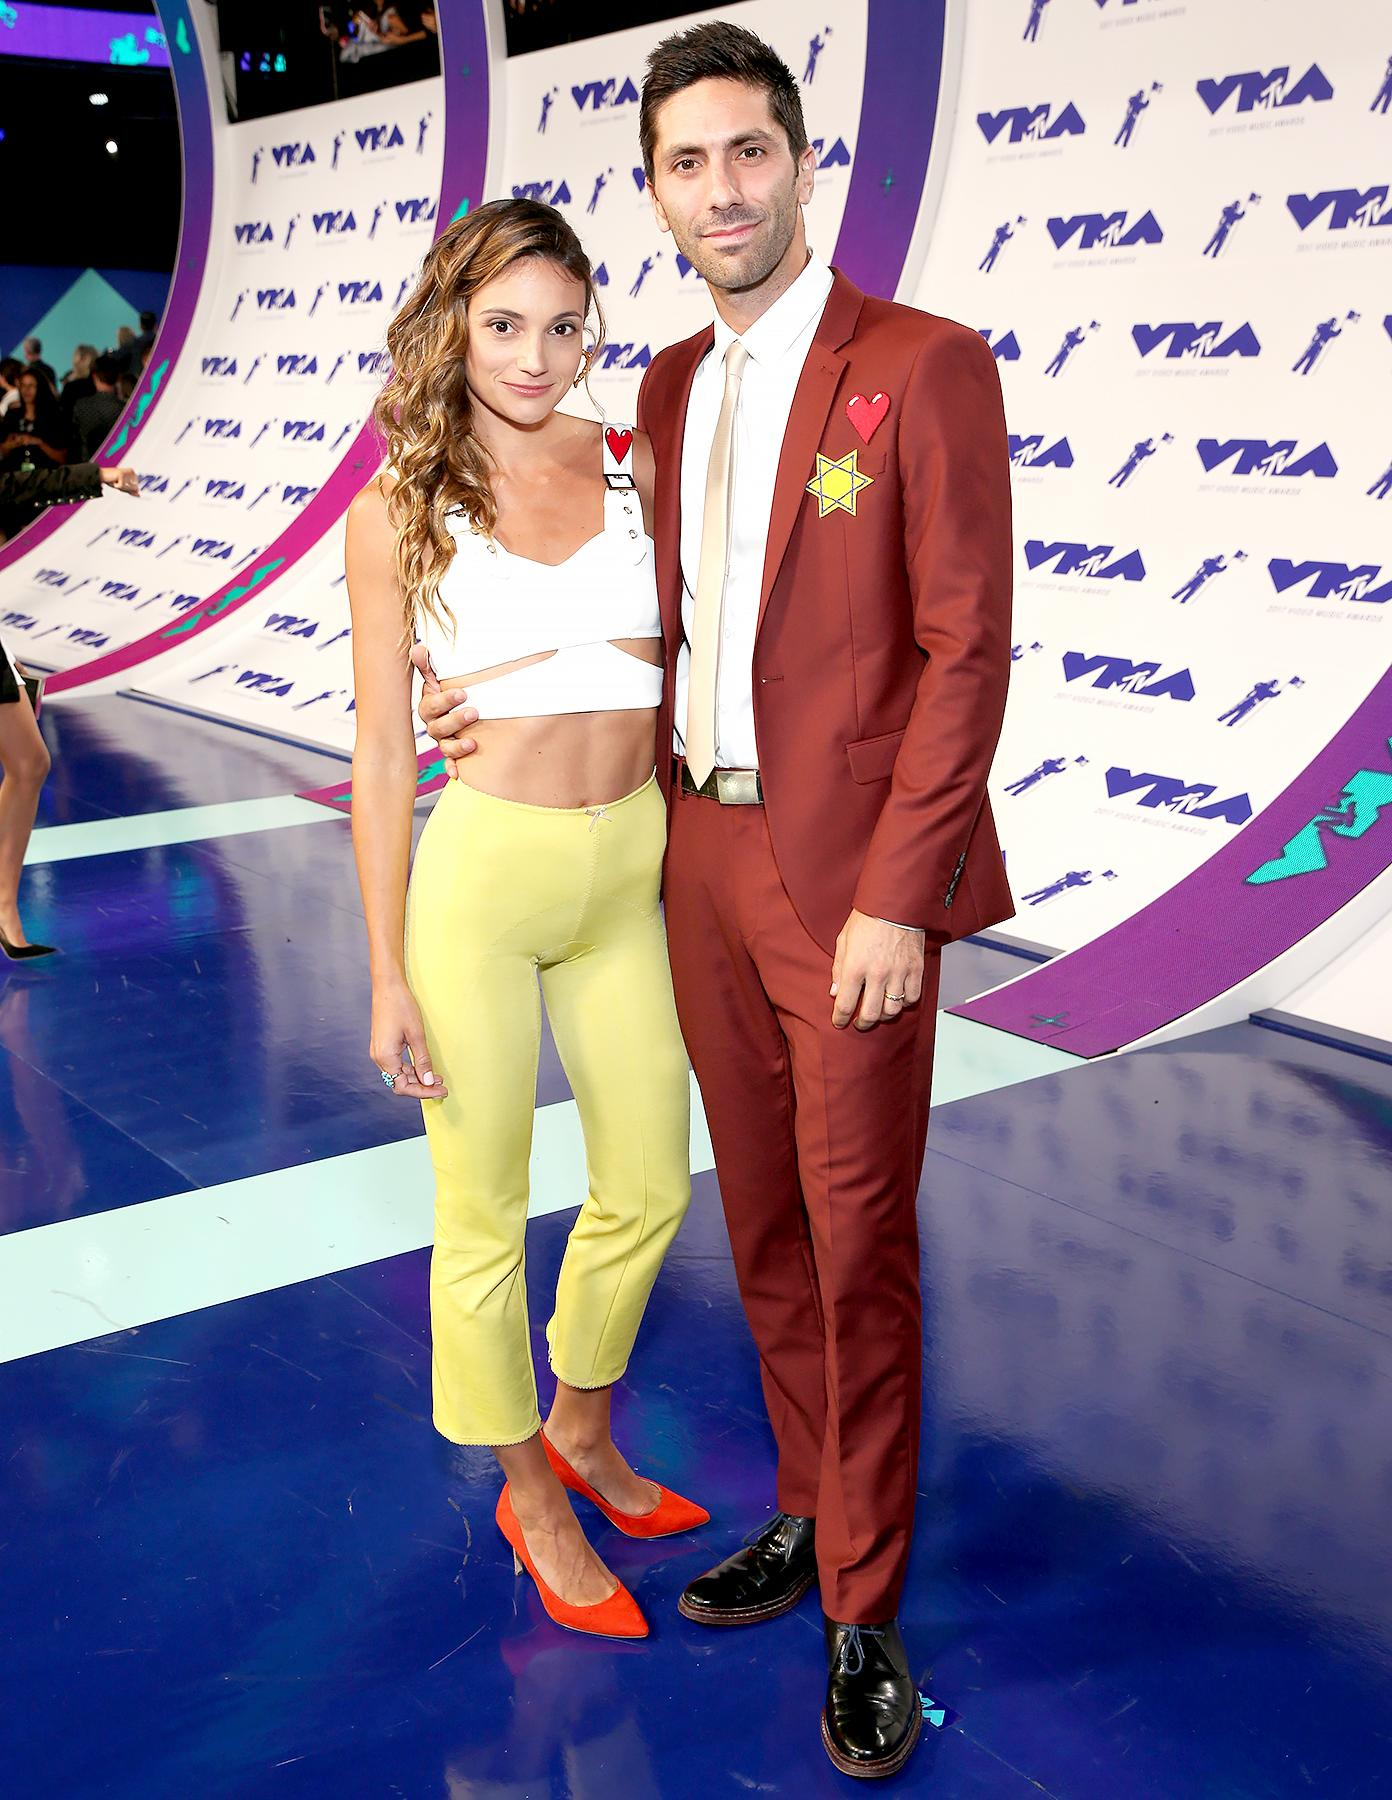 Vmas 2017 Nev Schulman And Wife Laura Perlongo Have Night Out After Wedding